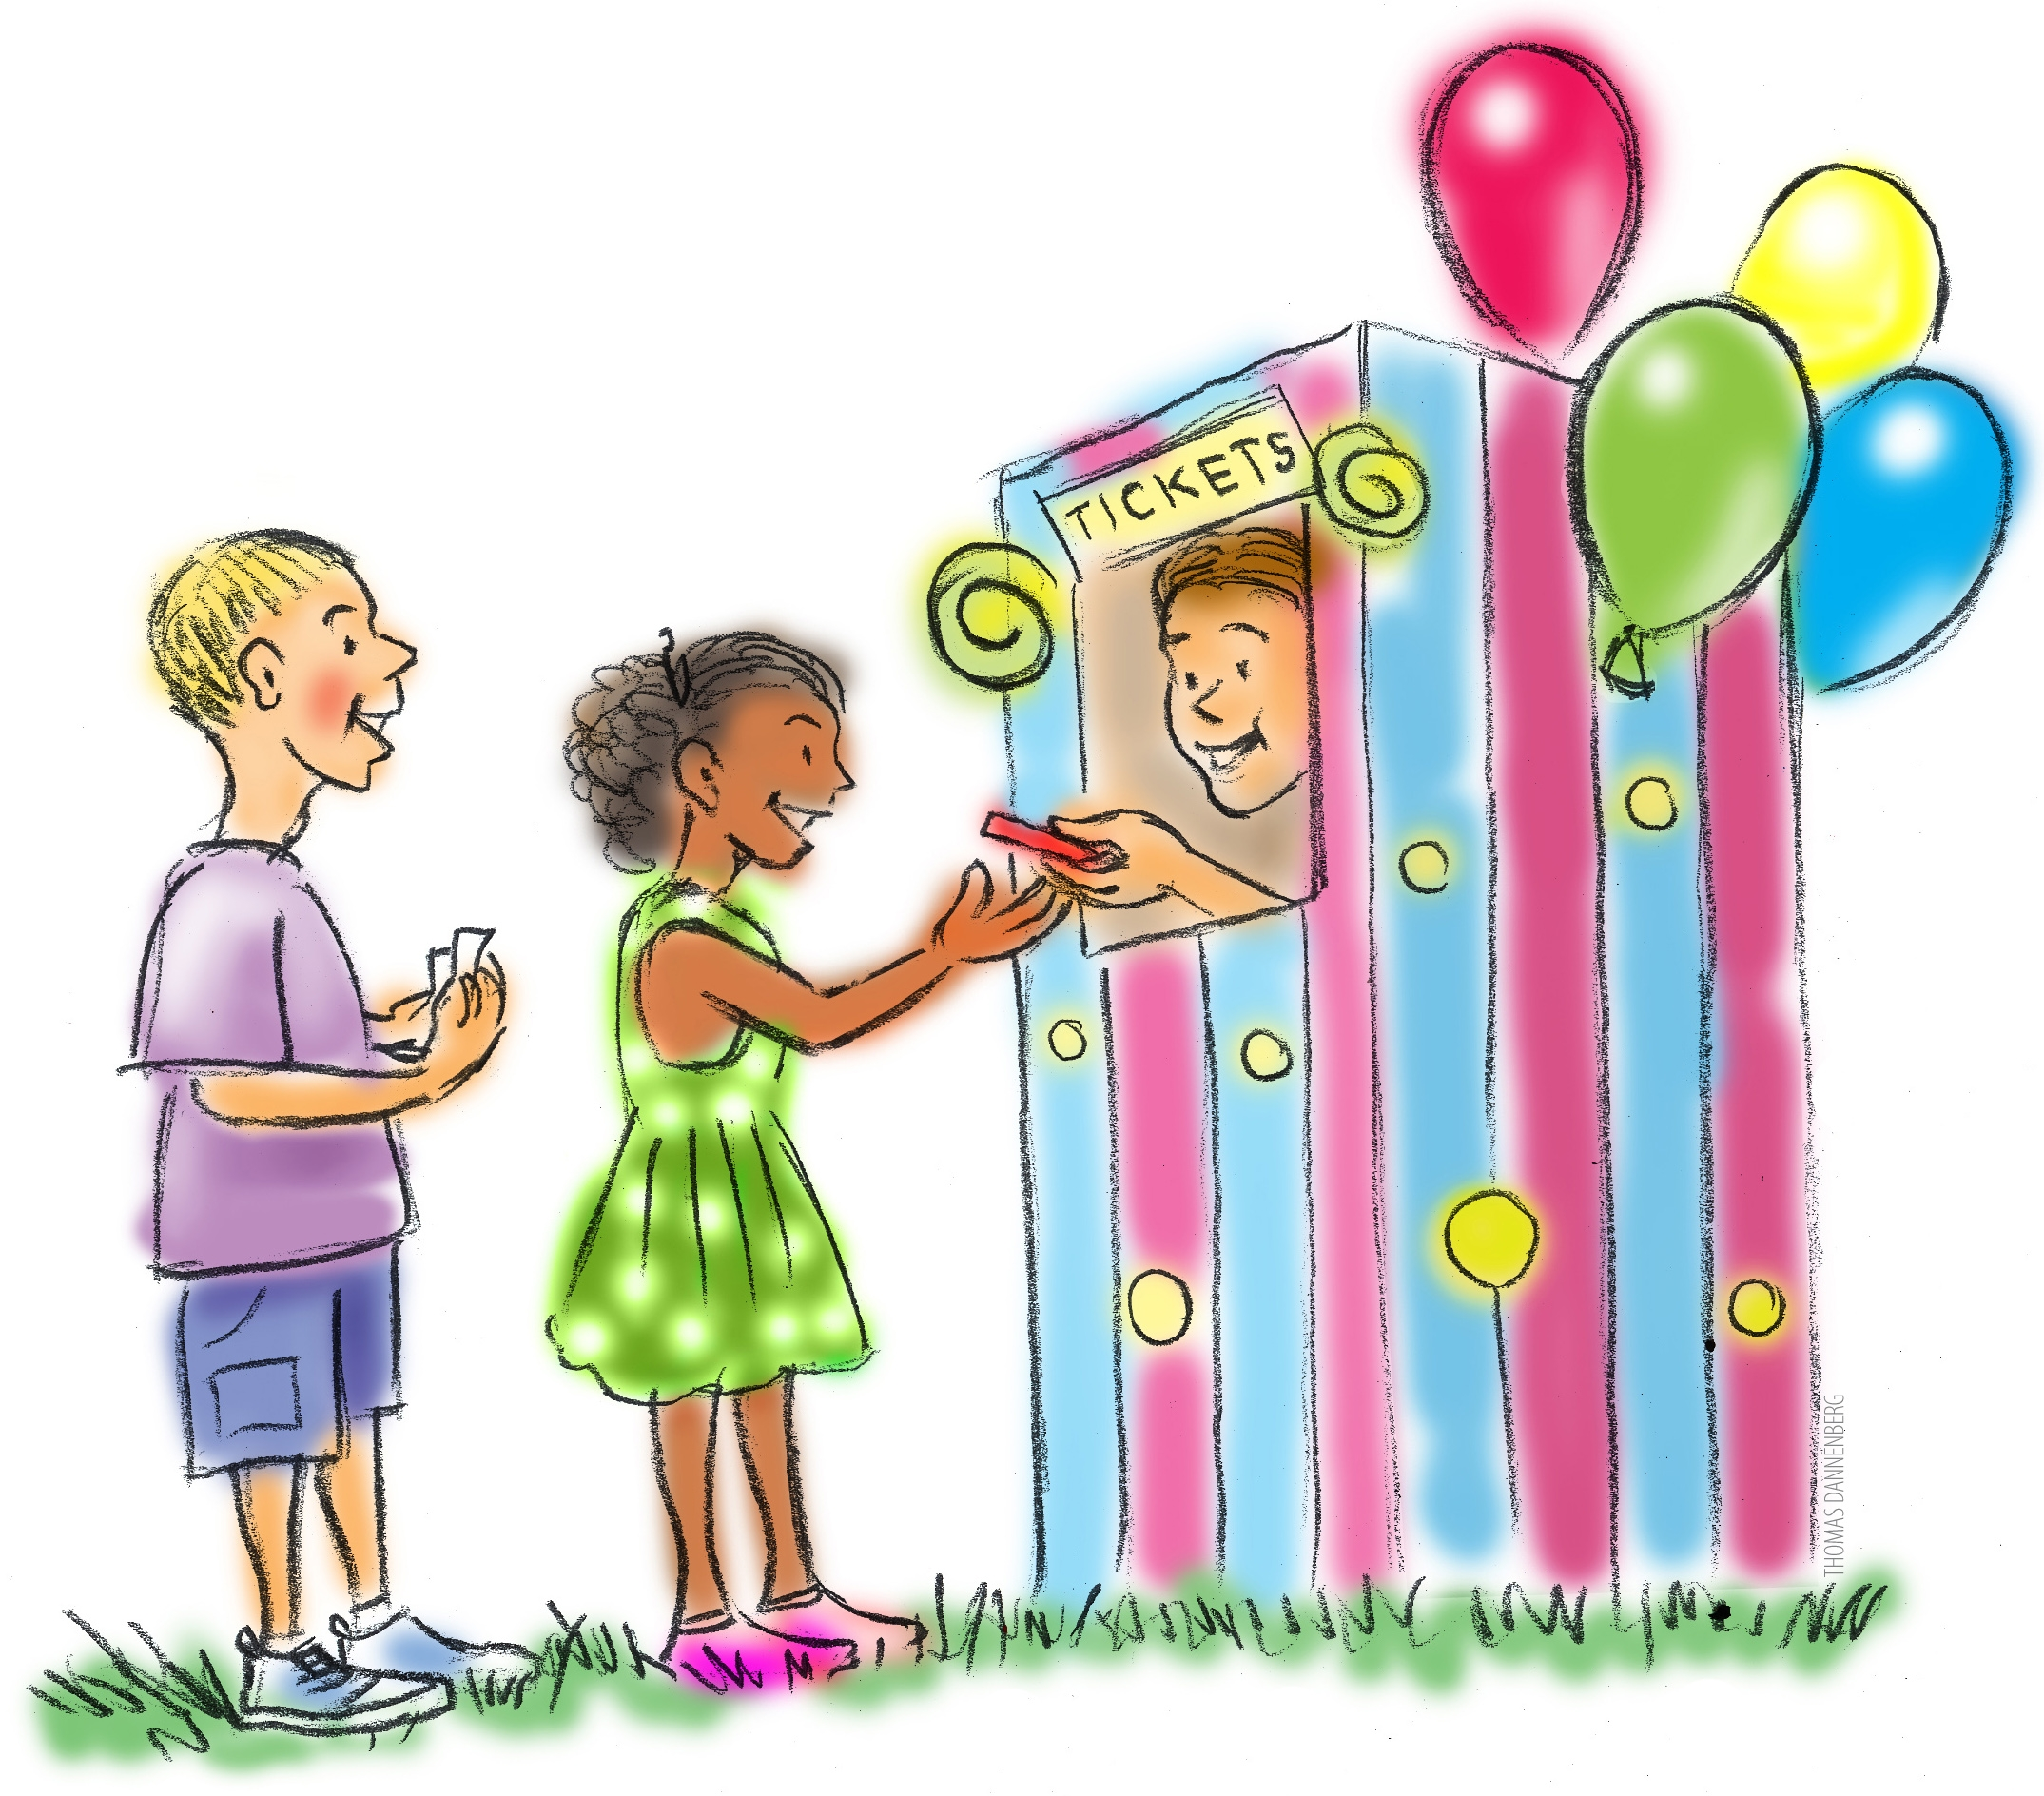 Tickets on sale highland. Carnival clipart kids carnival